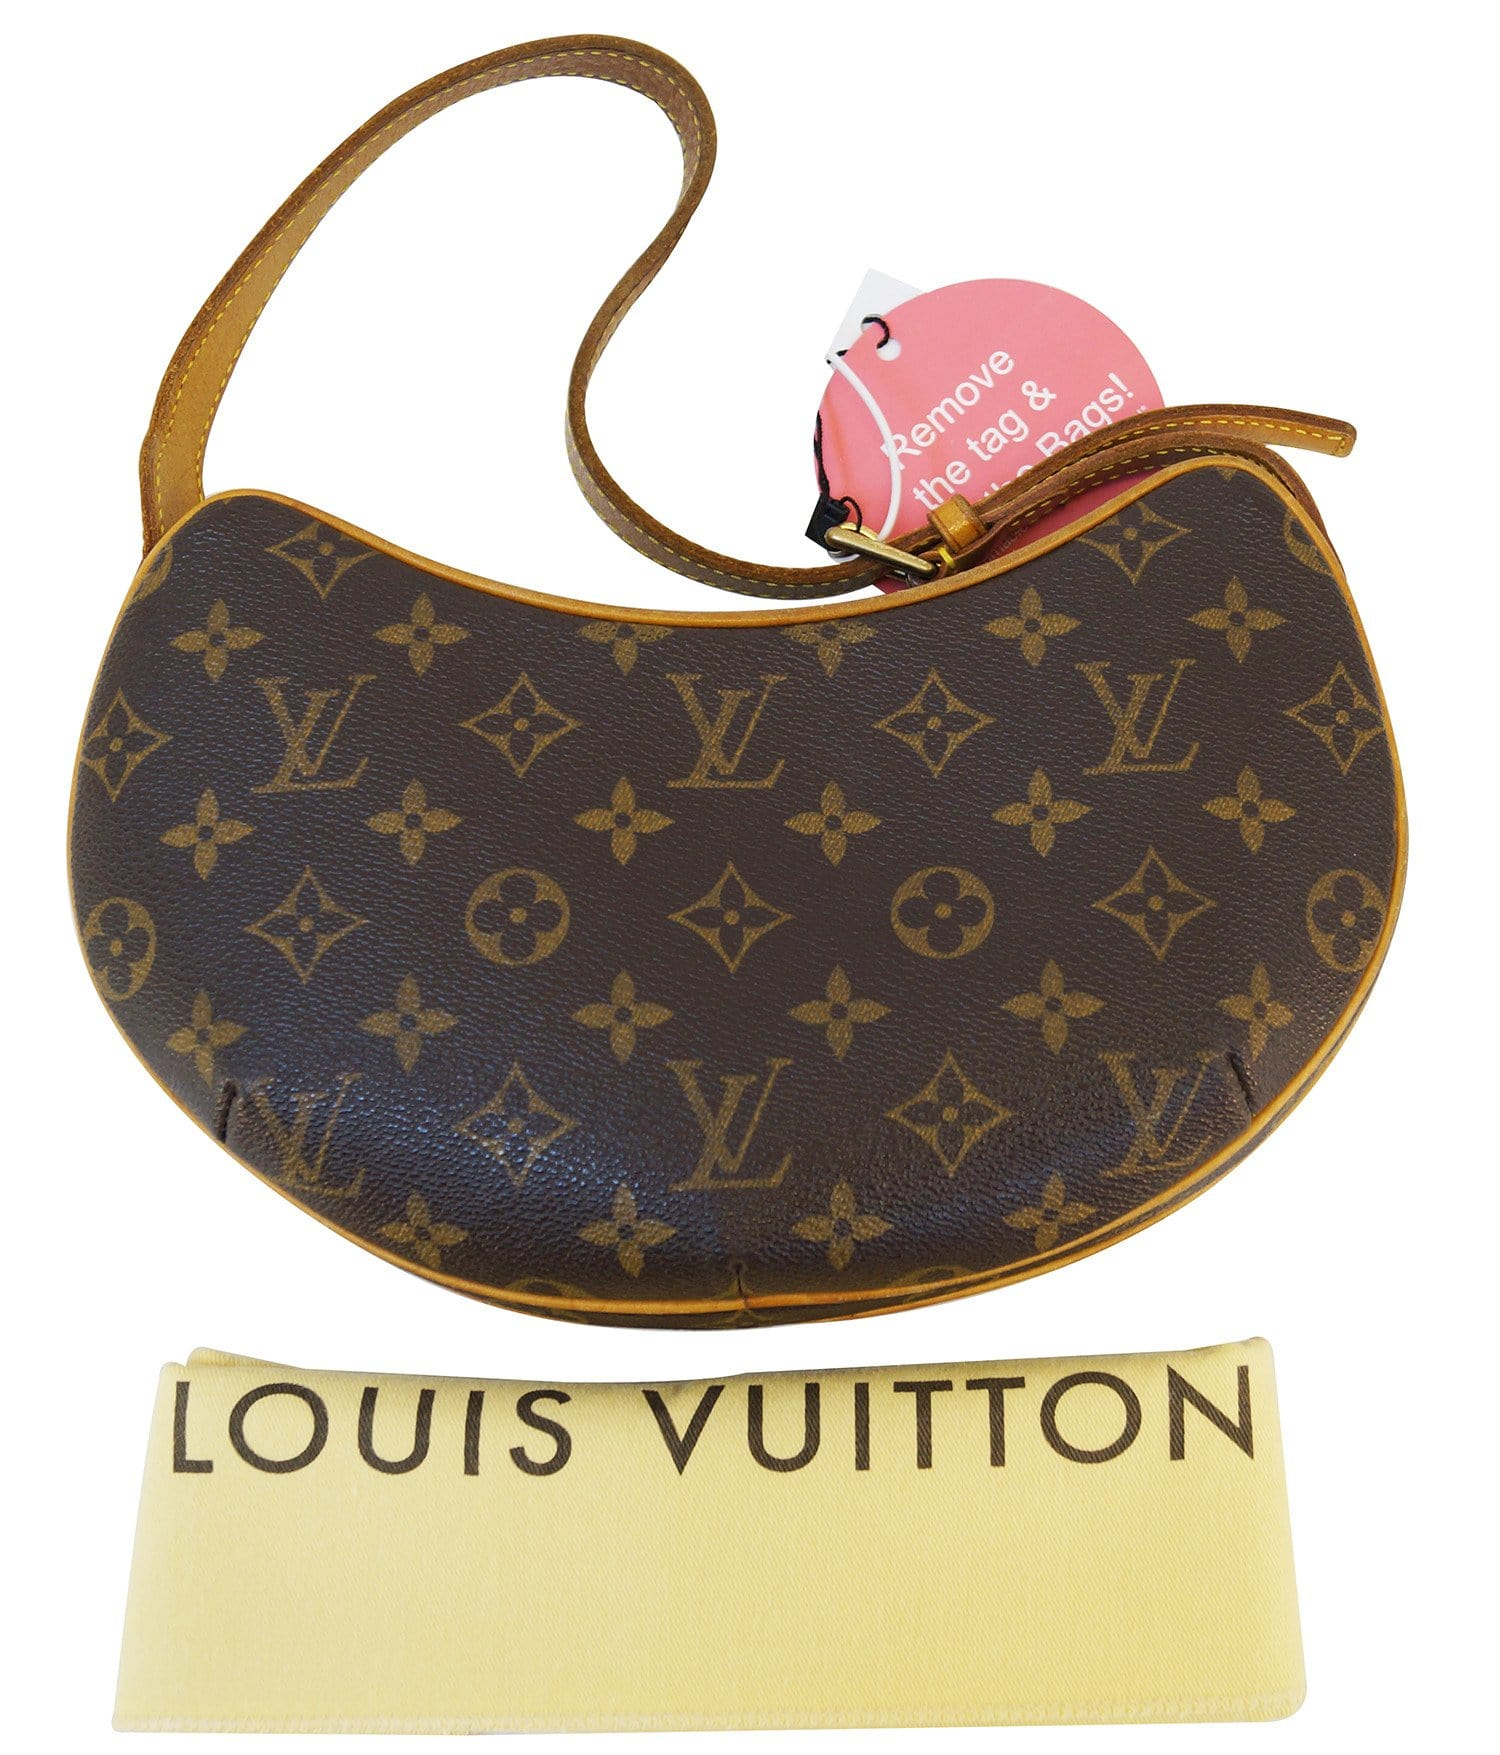 969792871988 LOUIS VUITTON Monogram Pochette Croissant PM Shoulder Bag - Final Call